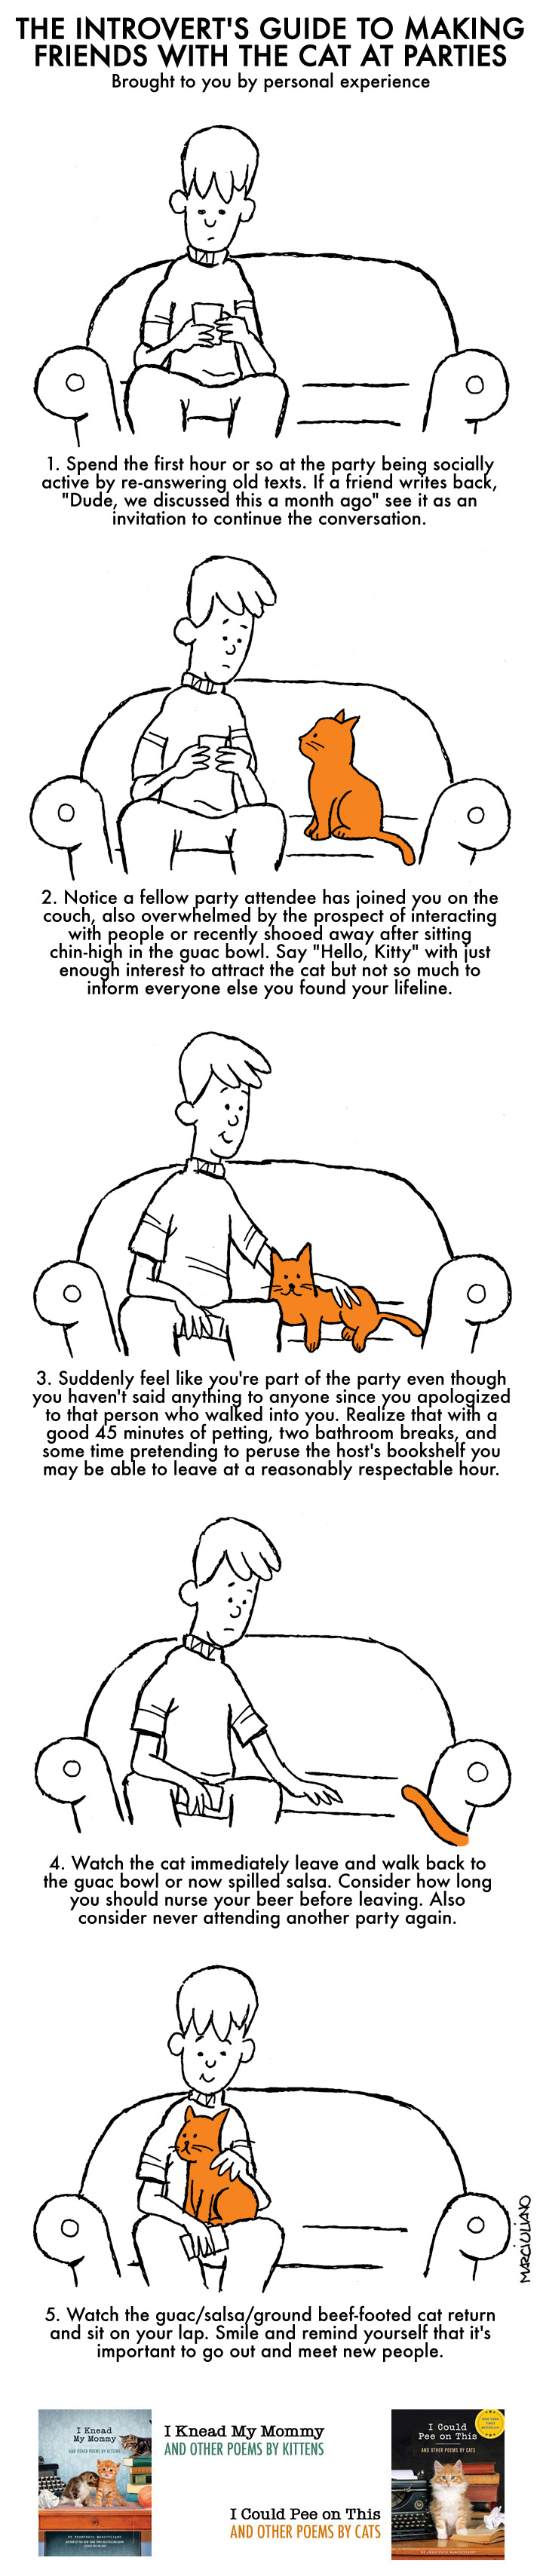 Introvert's Guide to Cats Color